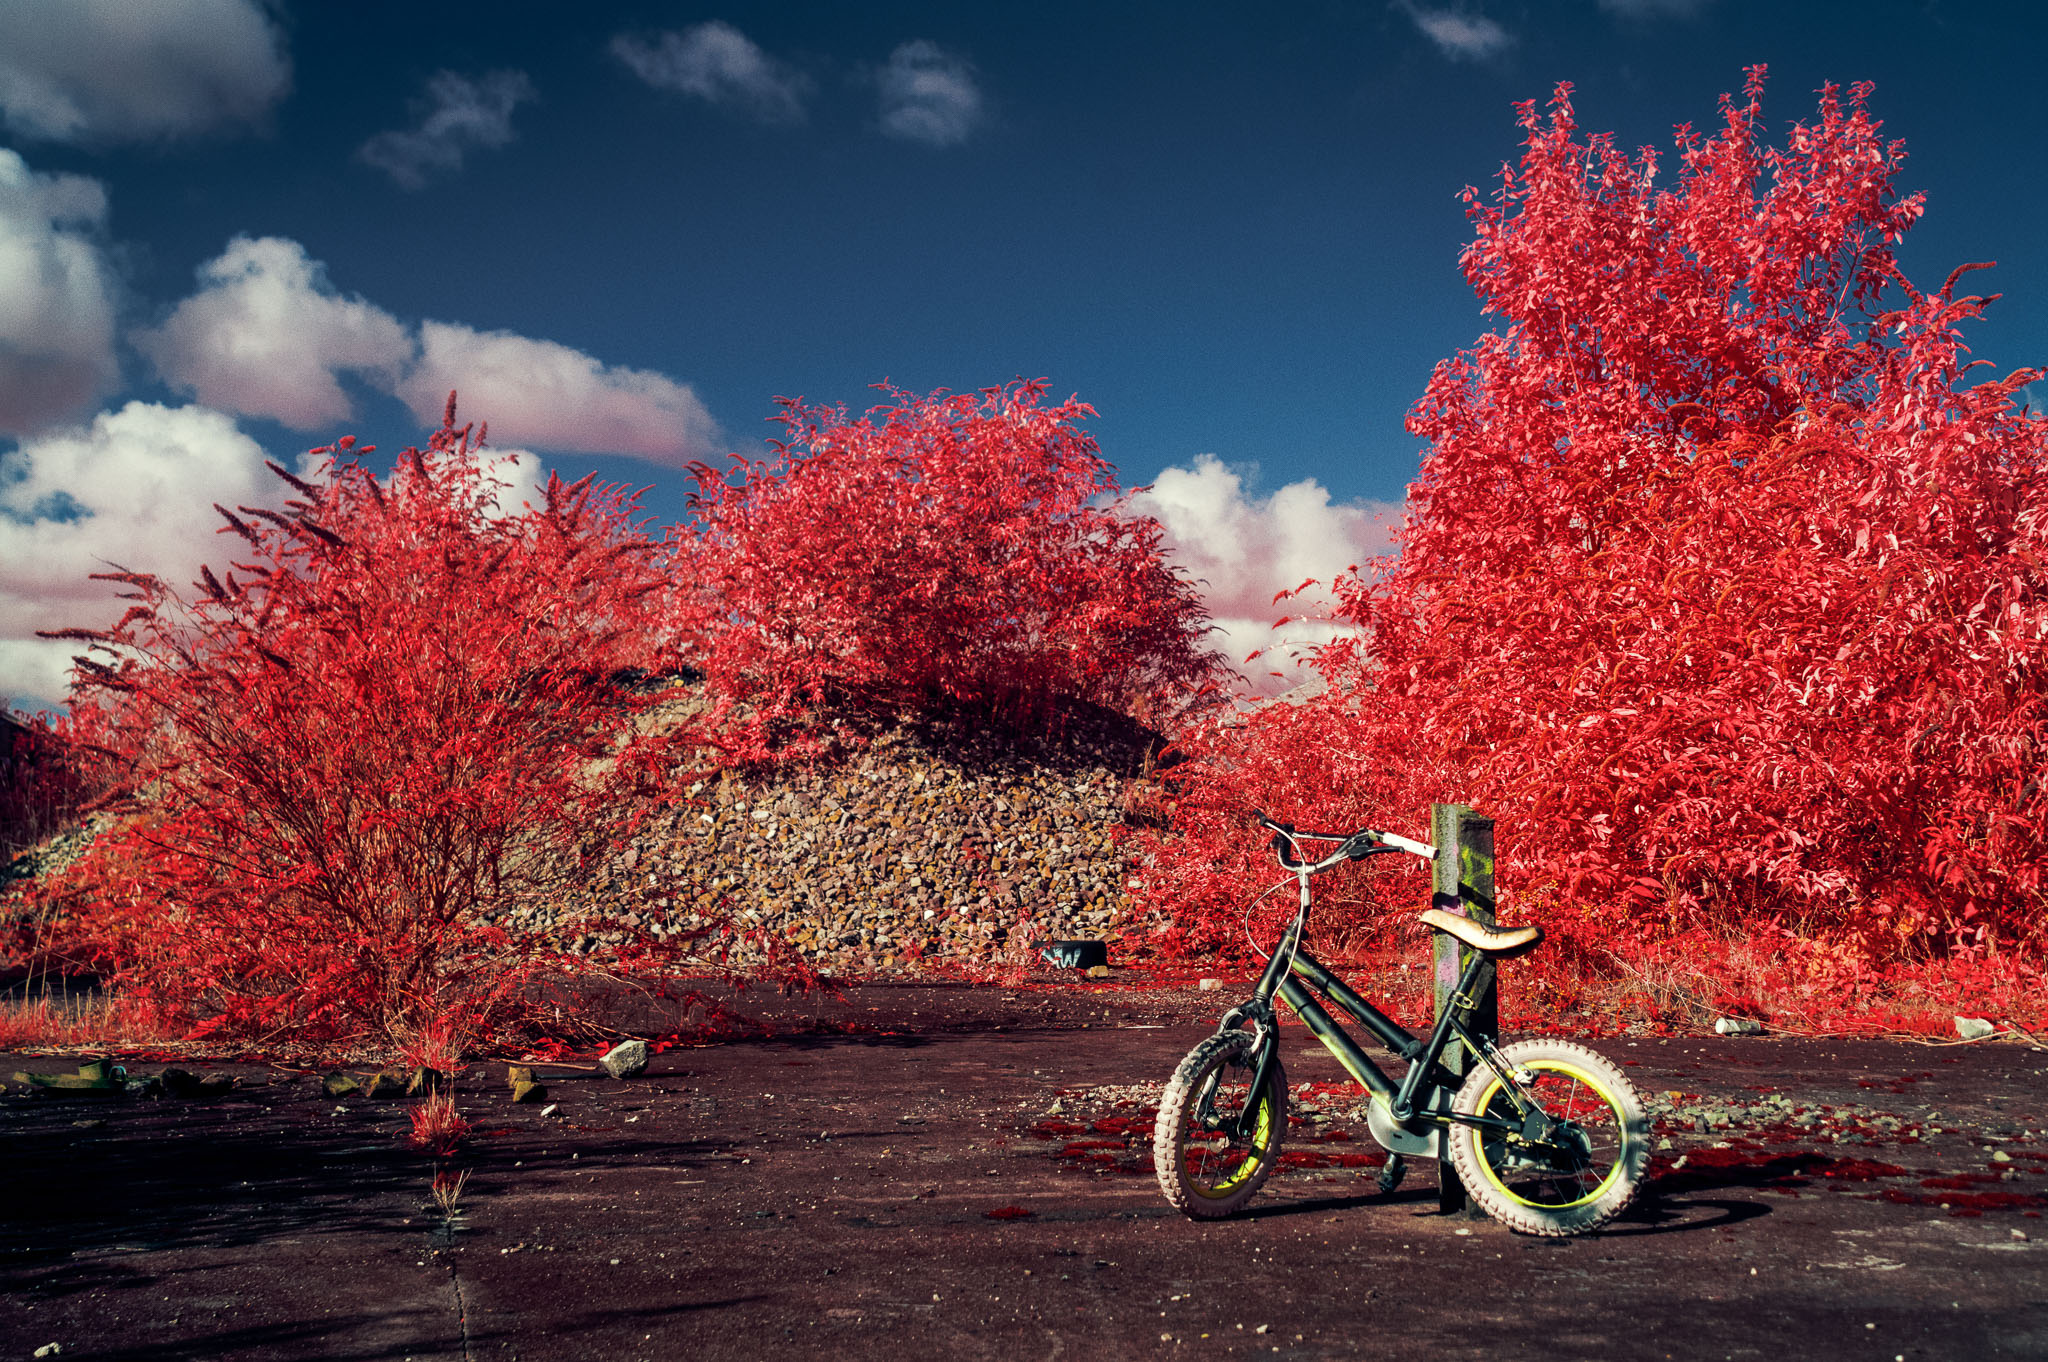 Kodak EIR Colour Infrared, Edgelands, Wasteland, Out of sight,  Bike